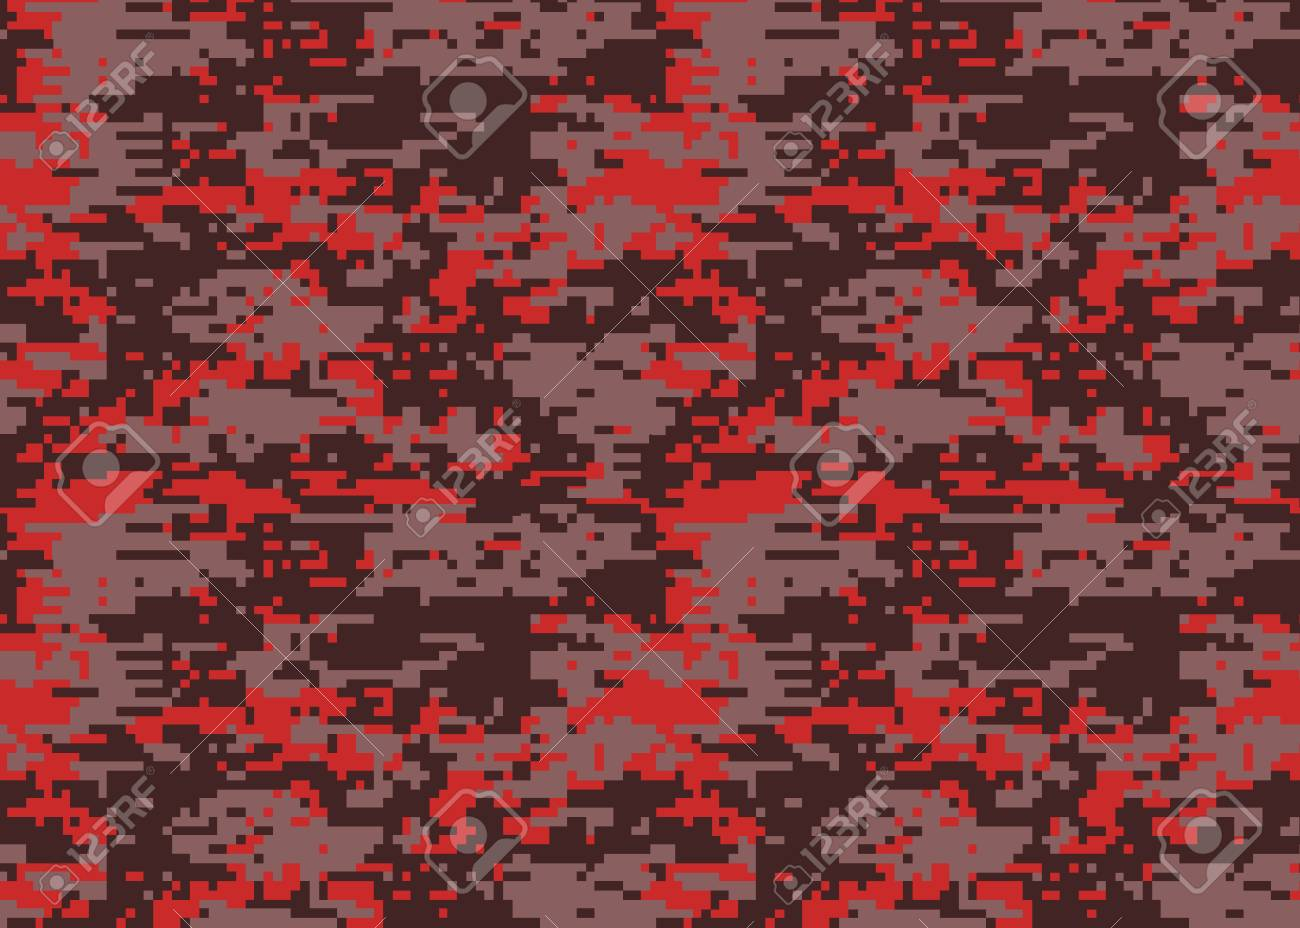 Digital camouflage pattern  Woodland camo texture  Camouflage